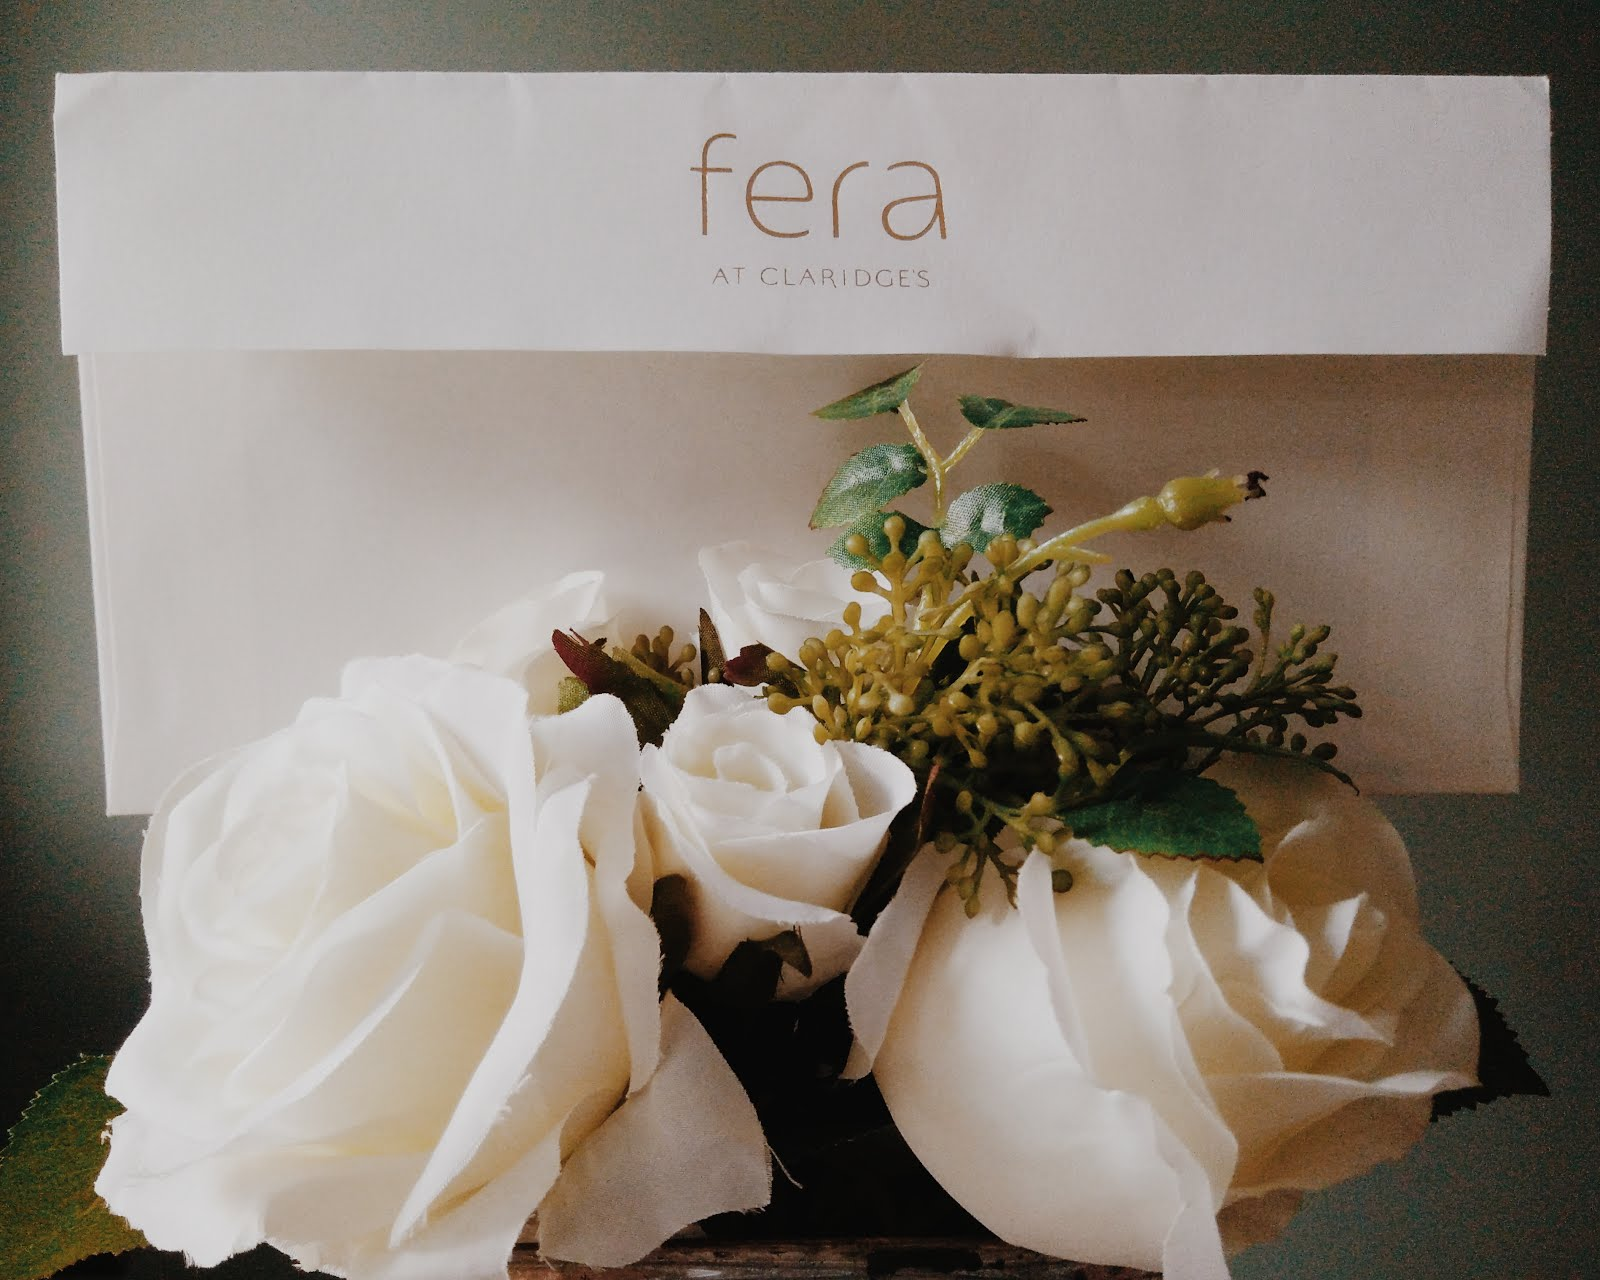 Michelin starred lunch in Fera at Claridge's